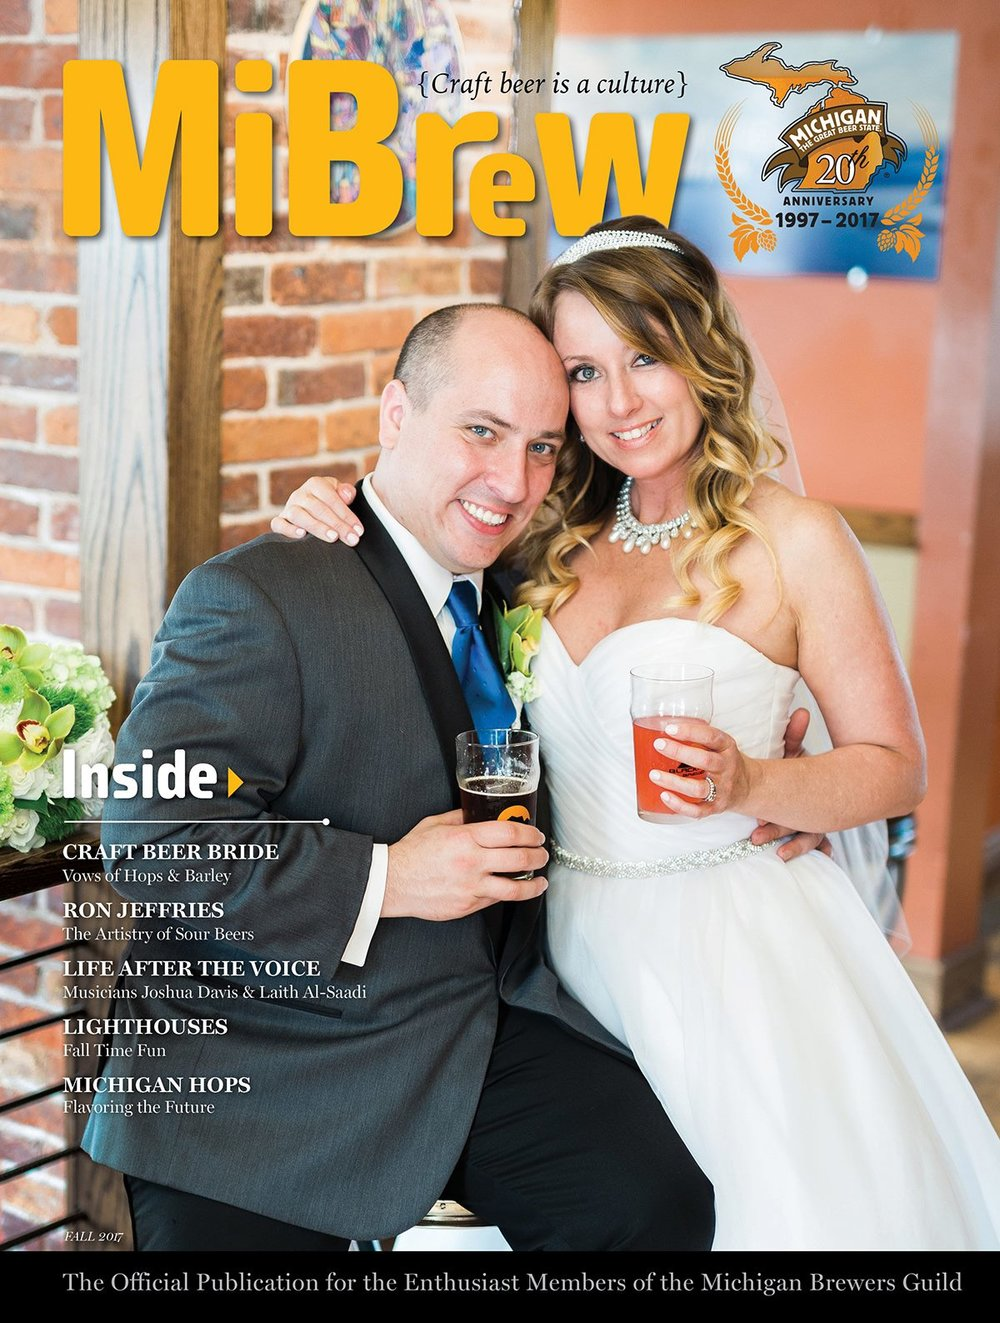 traverse-city-wedding-photographer-magazine-feature-rockhill-studio-1.jpg